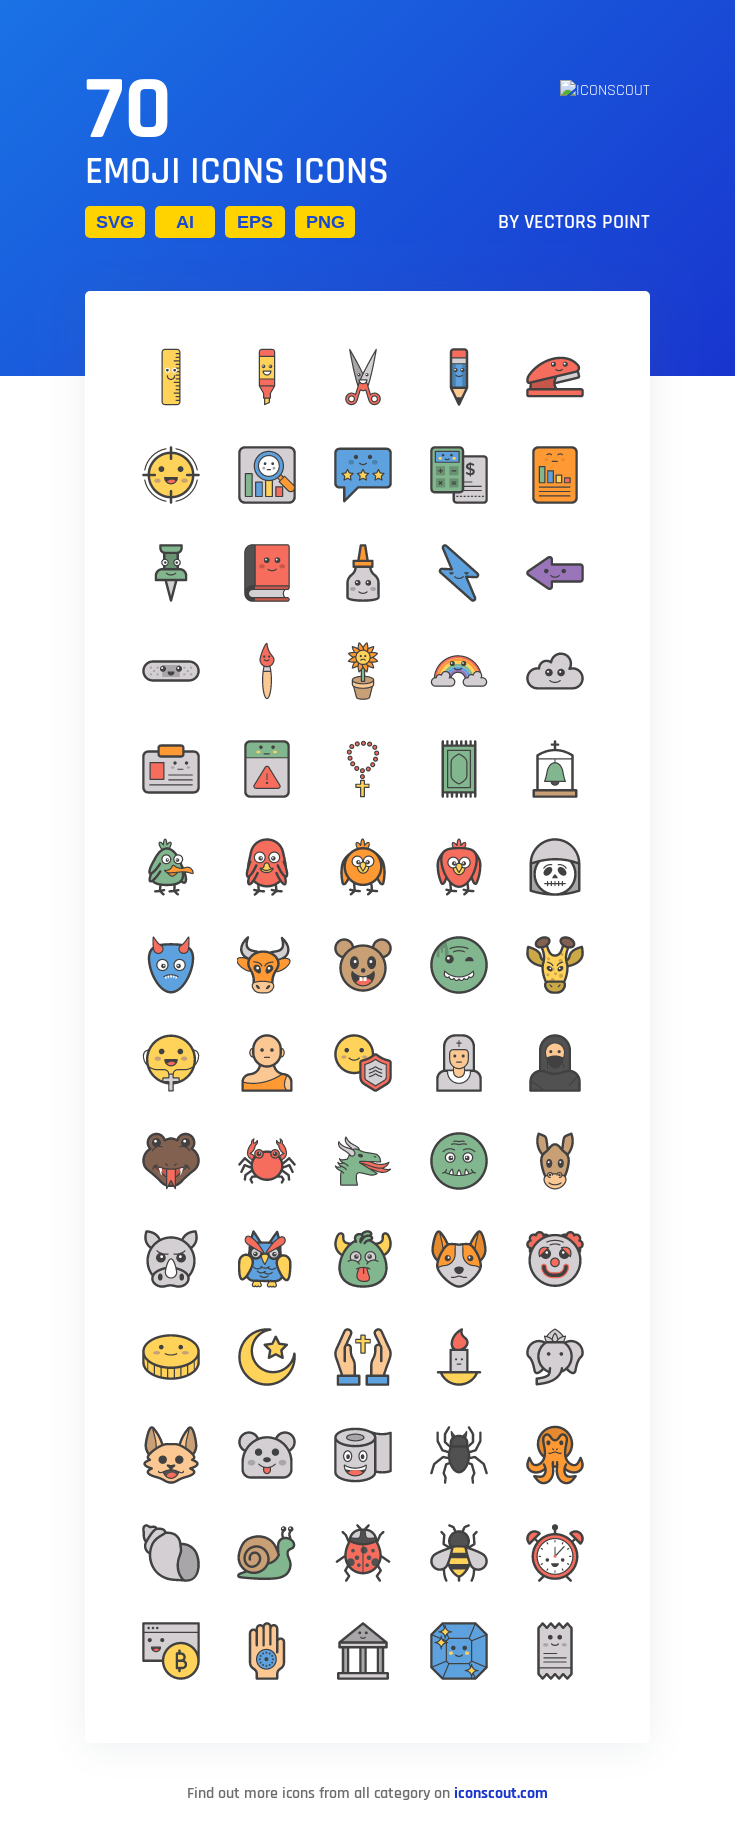 Download Emoji Icons Icon pack Available in SVG, PNG